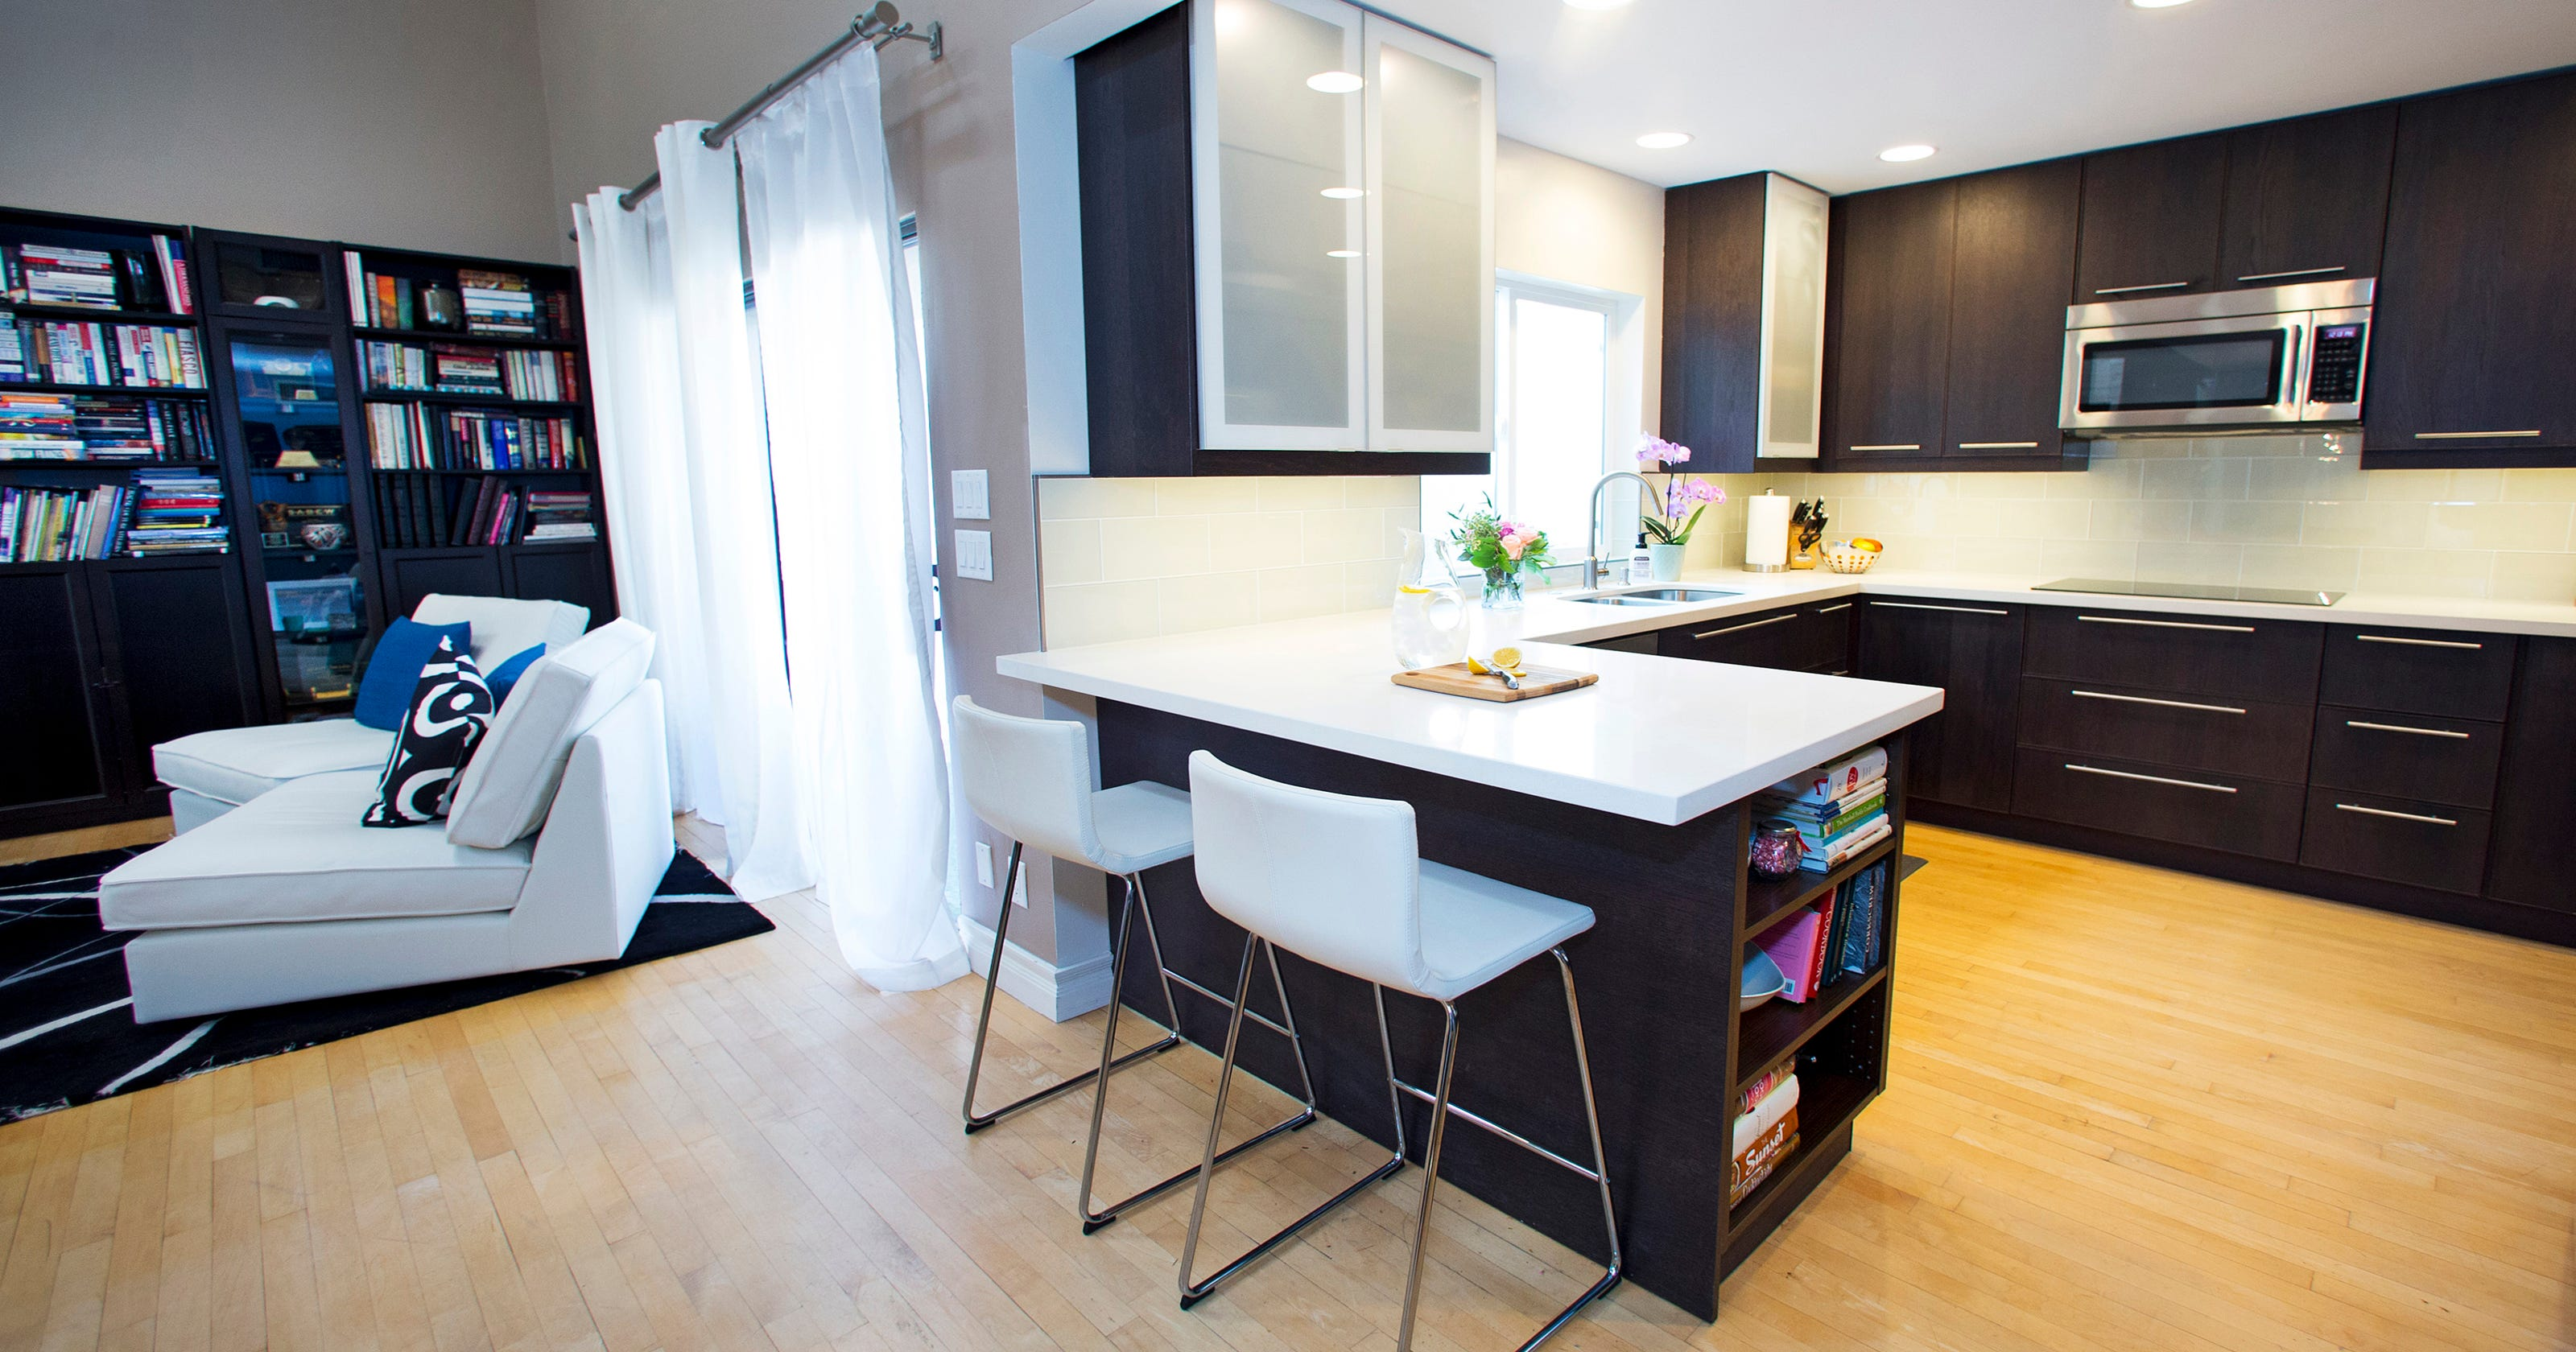 10 Diy Home Renovations For The Thrifty Homeowner